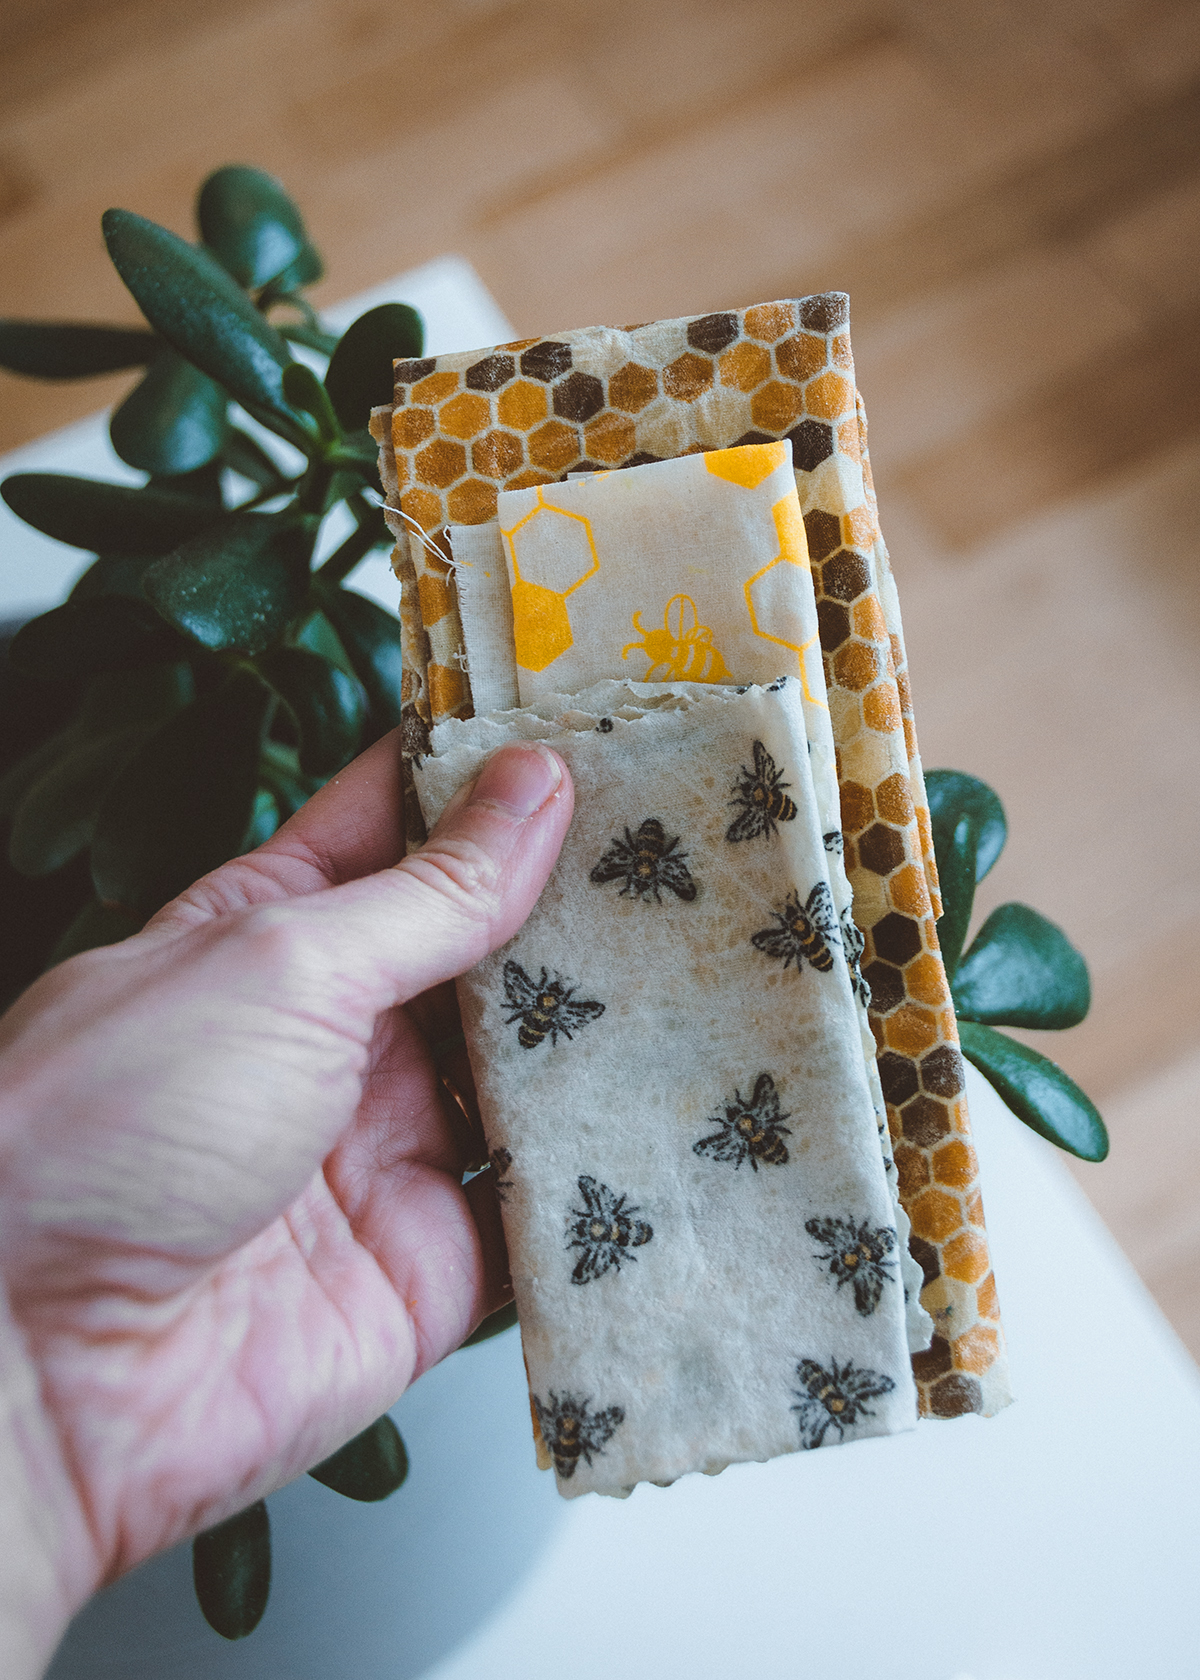 Bees wax cloths can replace plastic cling wrap